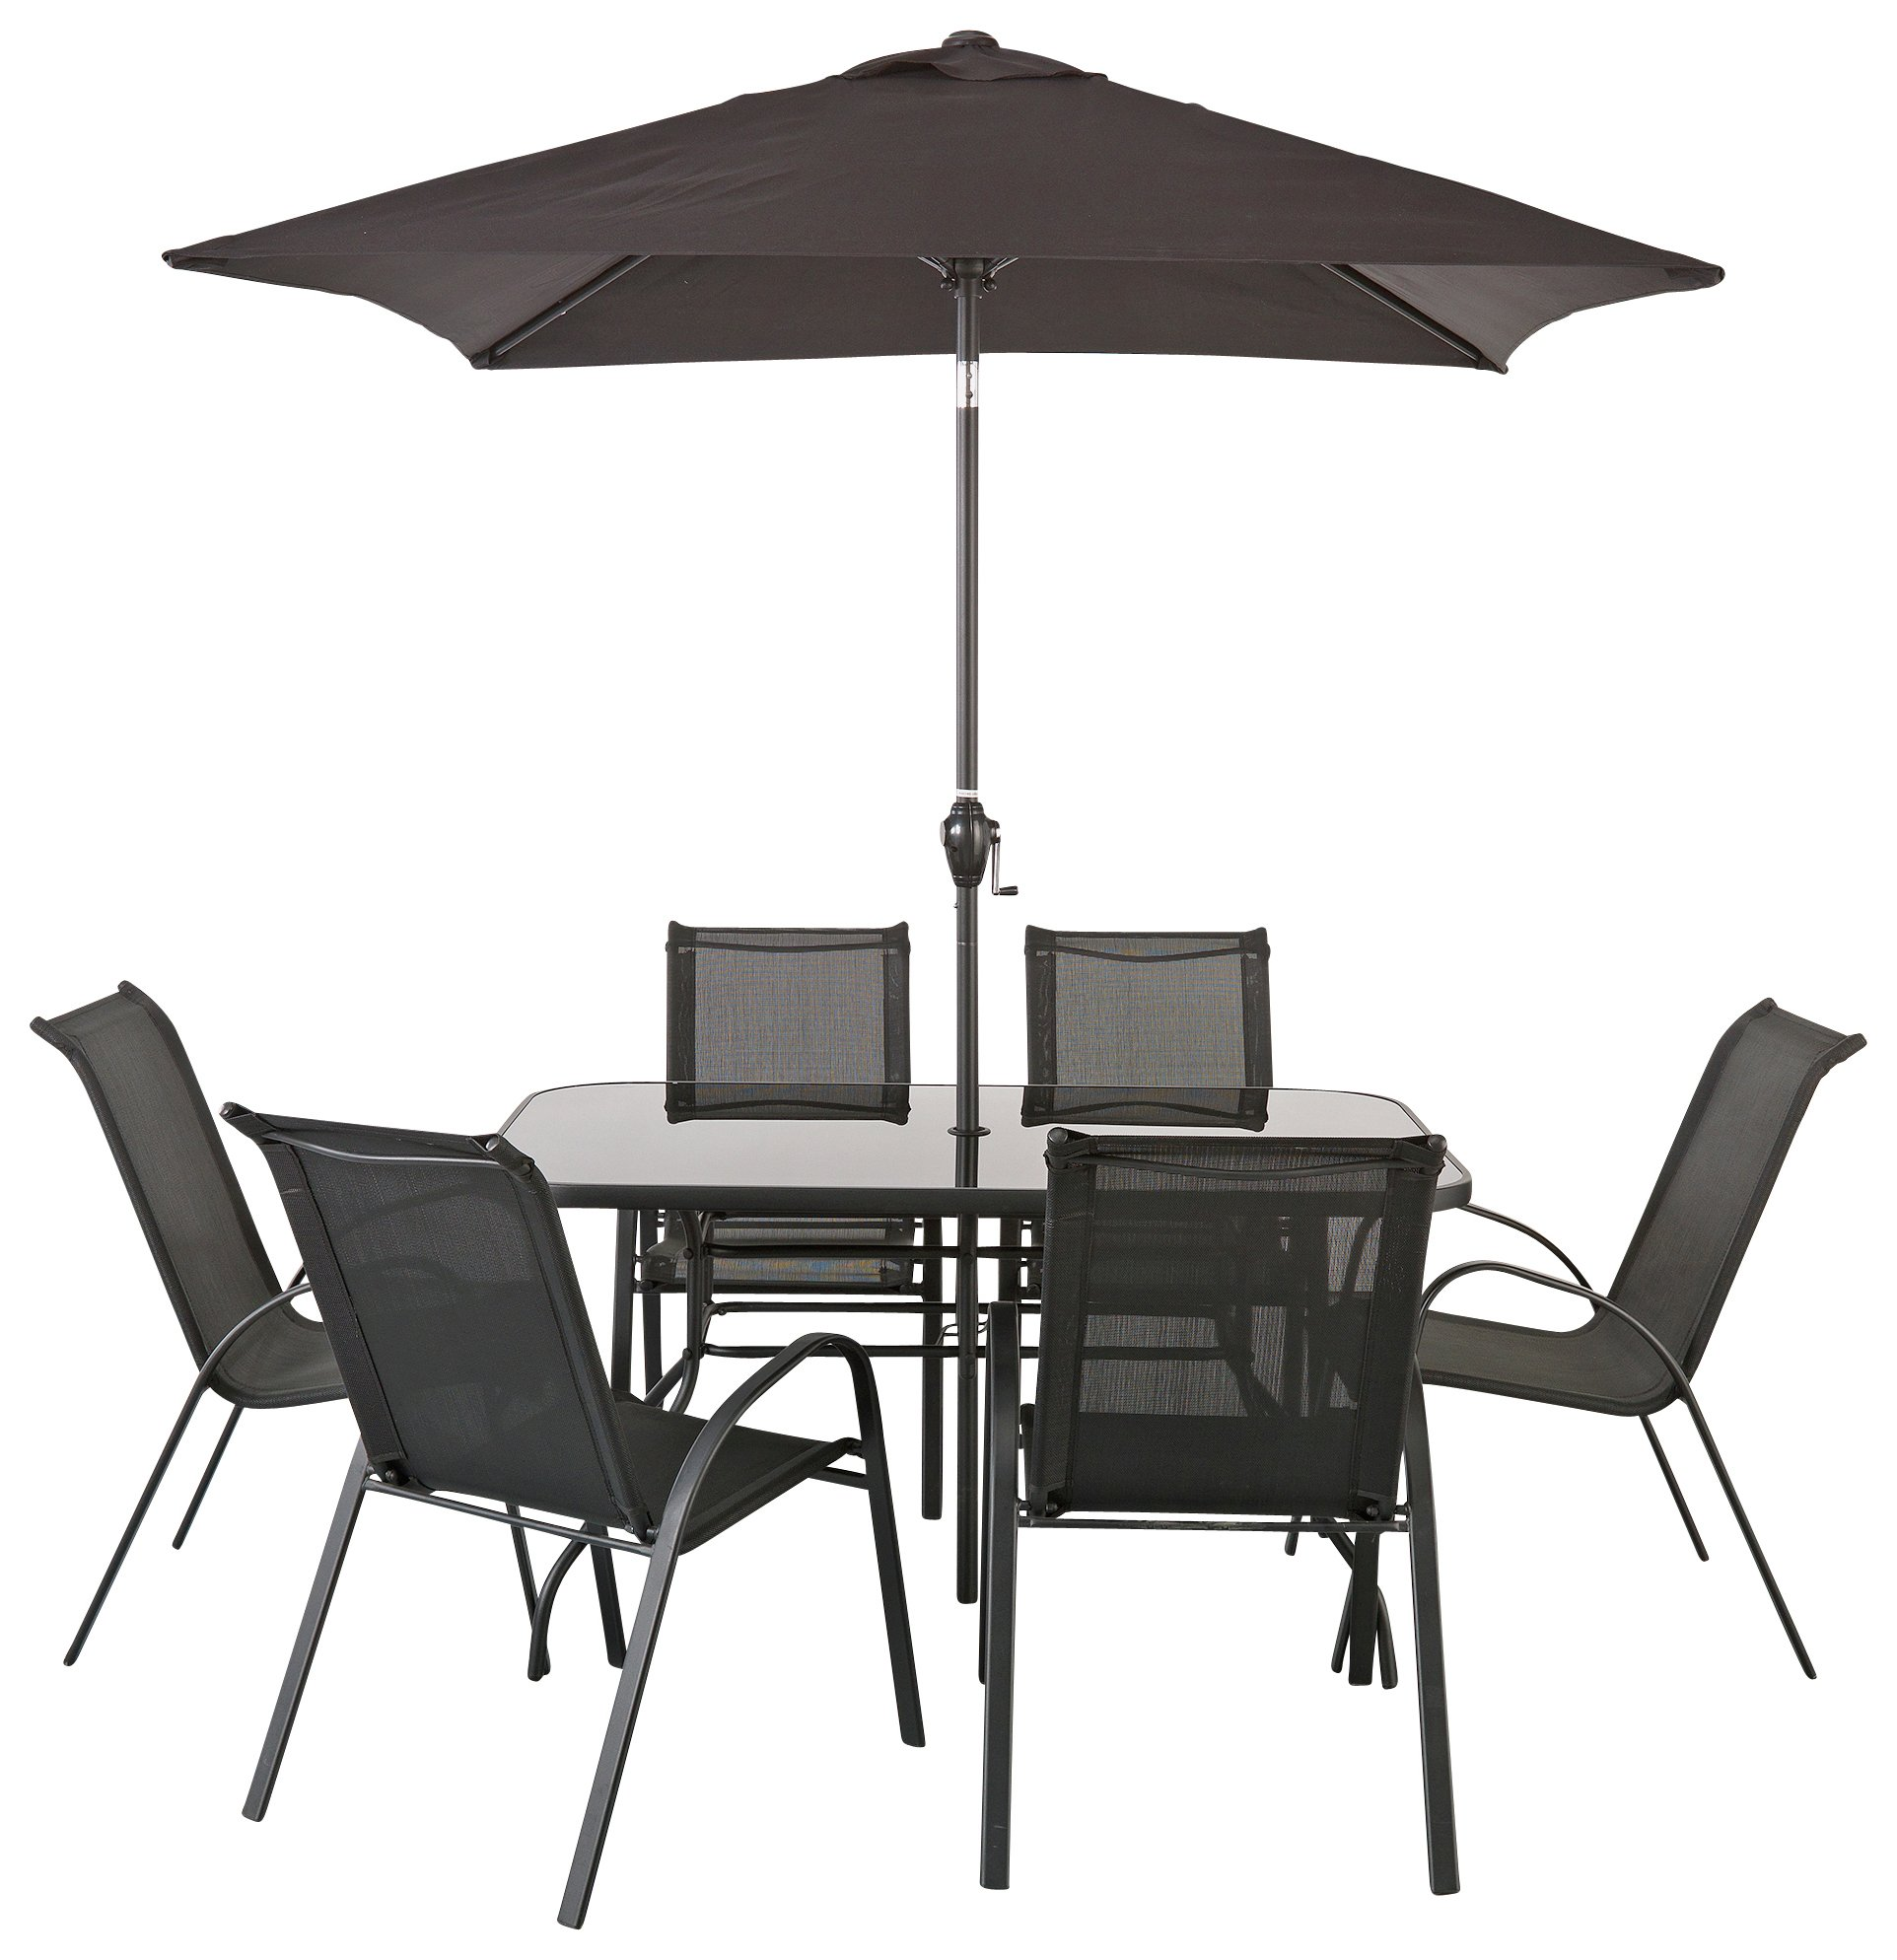 Garden Furniture 6 Seater buy home sicily 6 seater patio furniture set at argos.co.uk - your